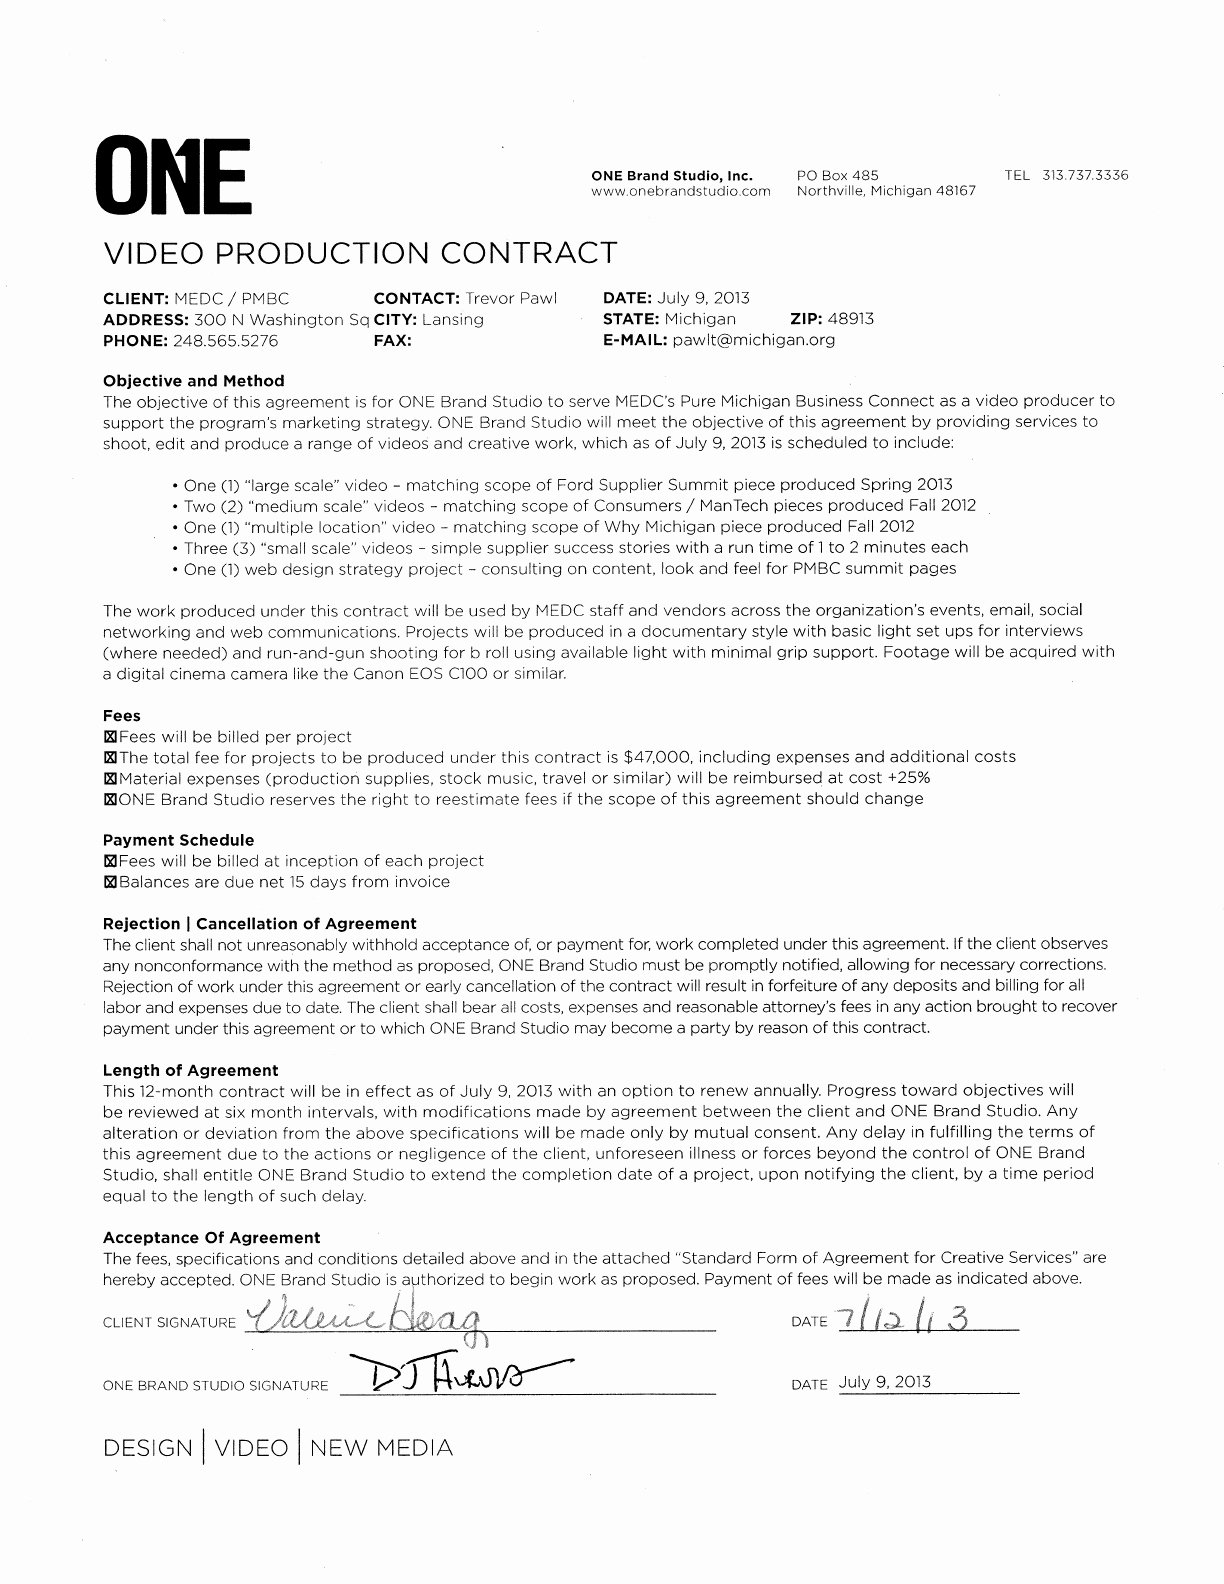 Wedding Videographer Contract Template Beautiful Free Video Production Proposal Sample